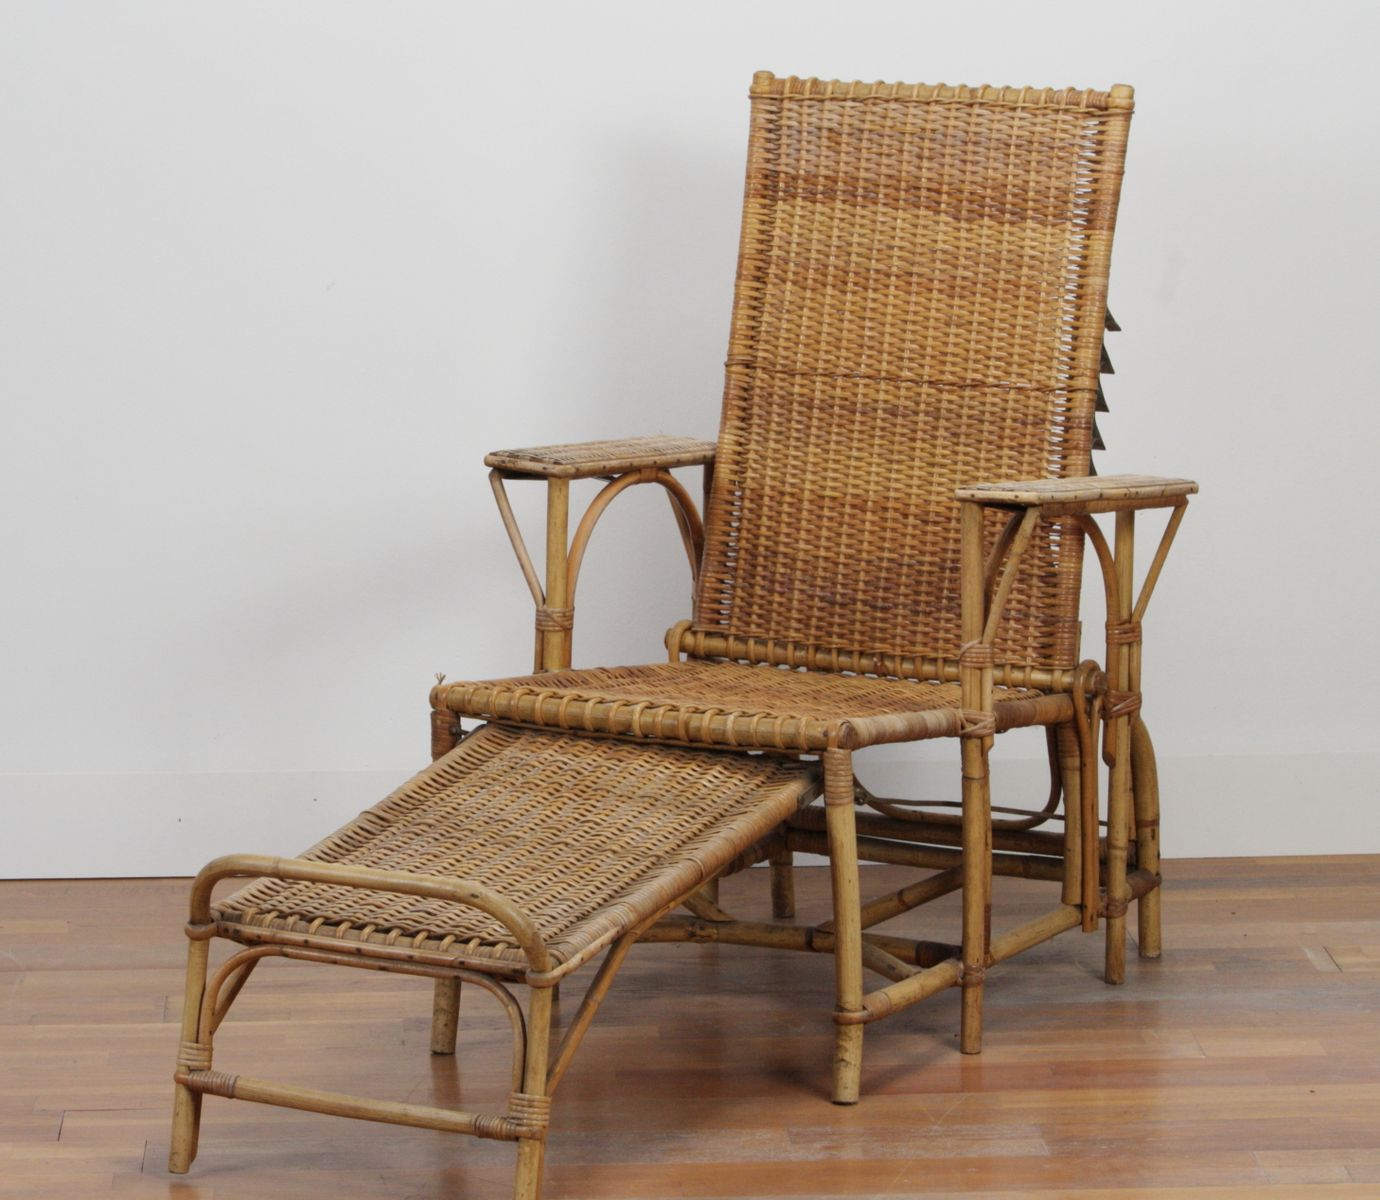 Rattan Lounge Chair by Erich Diekmann 1930 for sale at Pamono